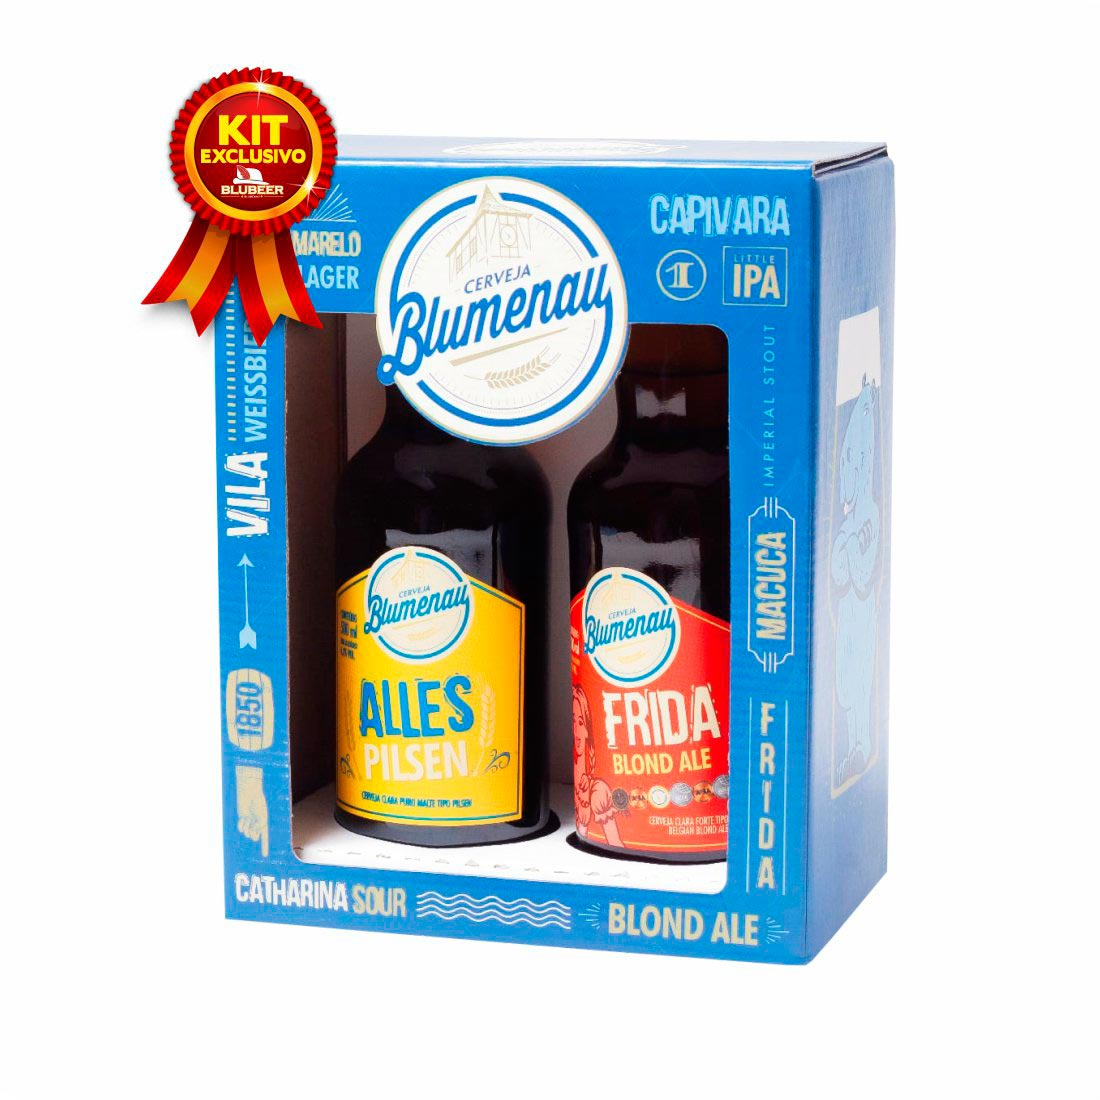 KIT BLUMENAU ALLES PILSEN + FRIDA 500ML